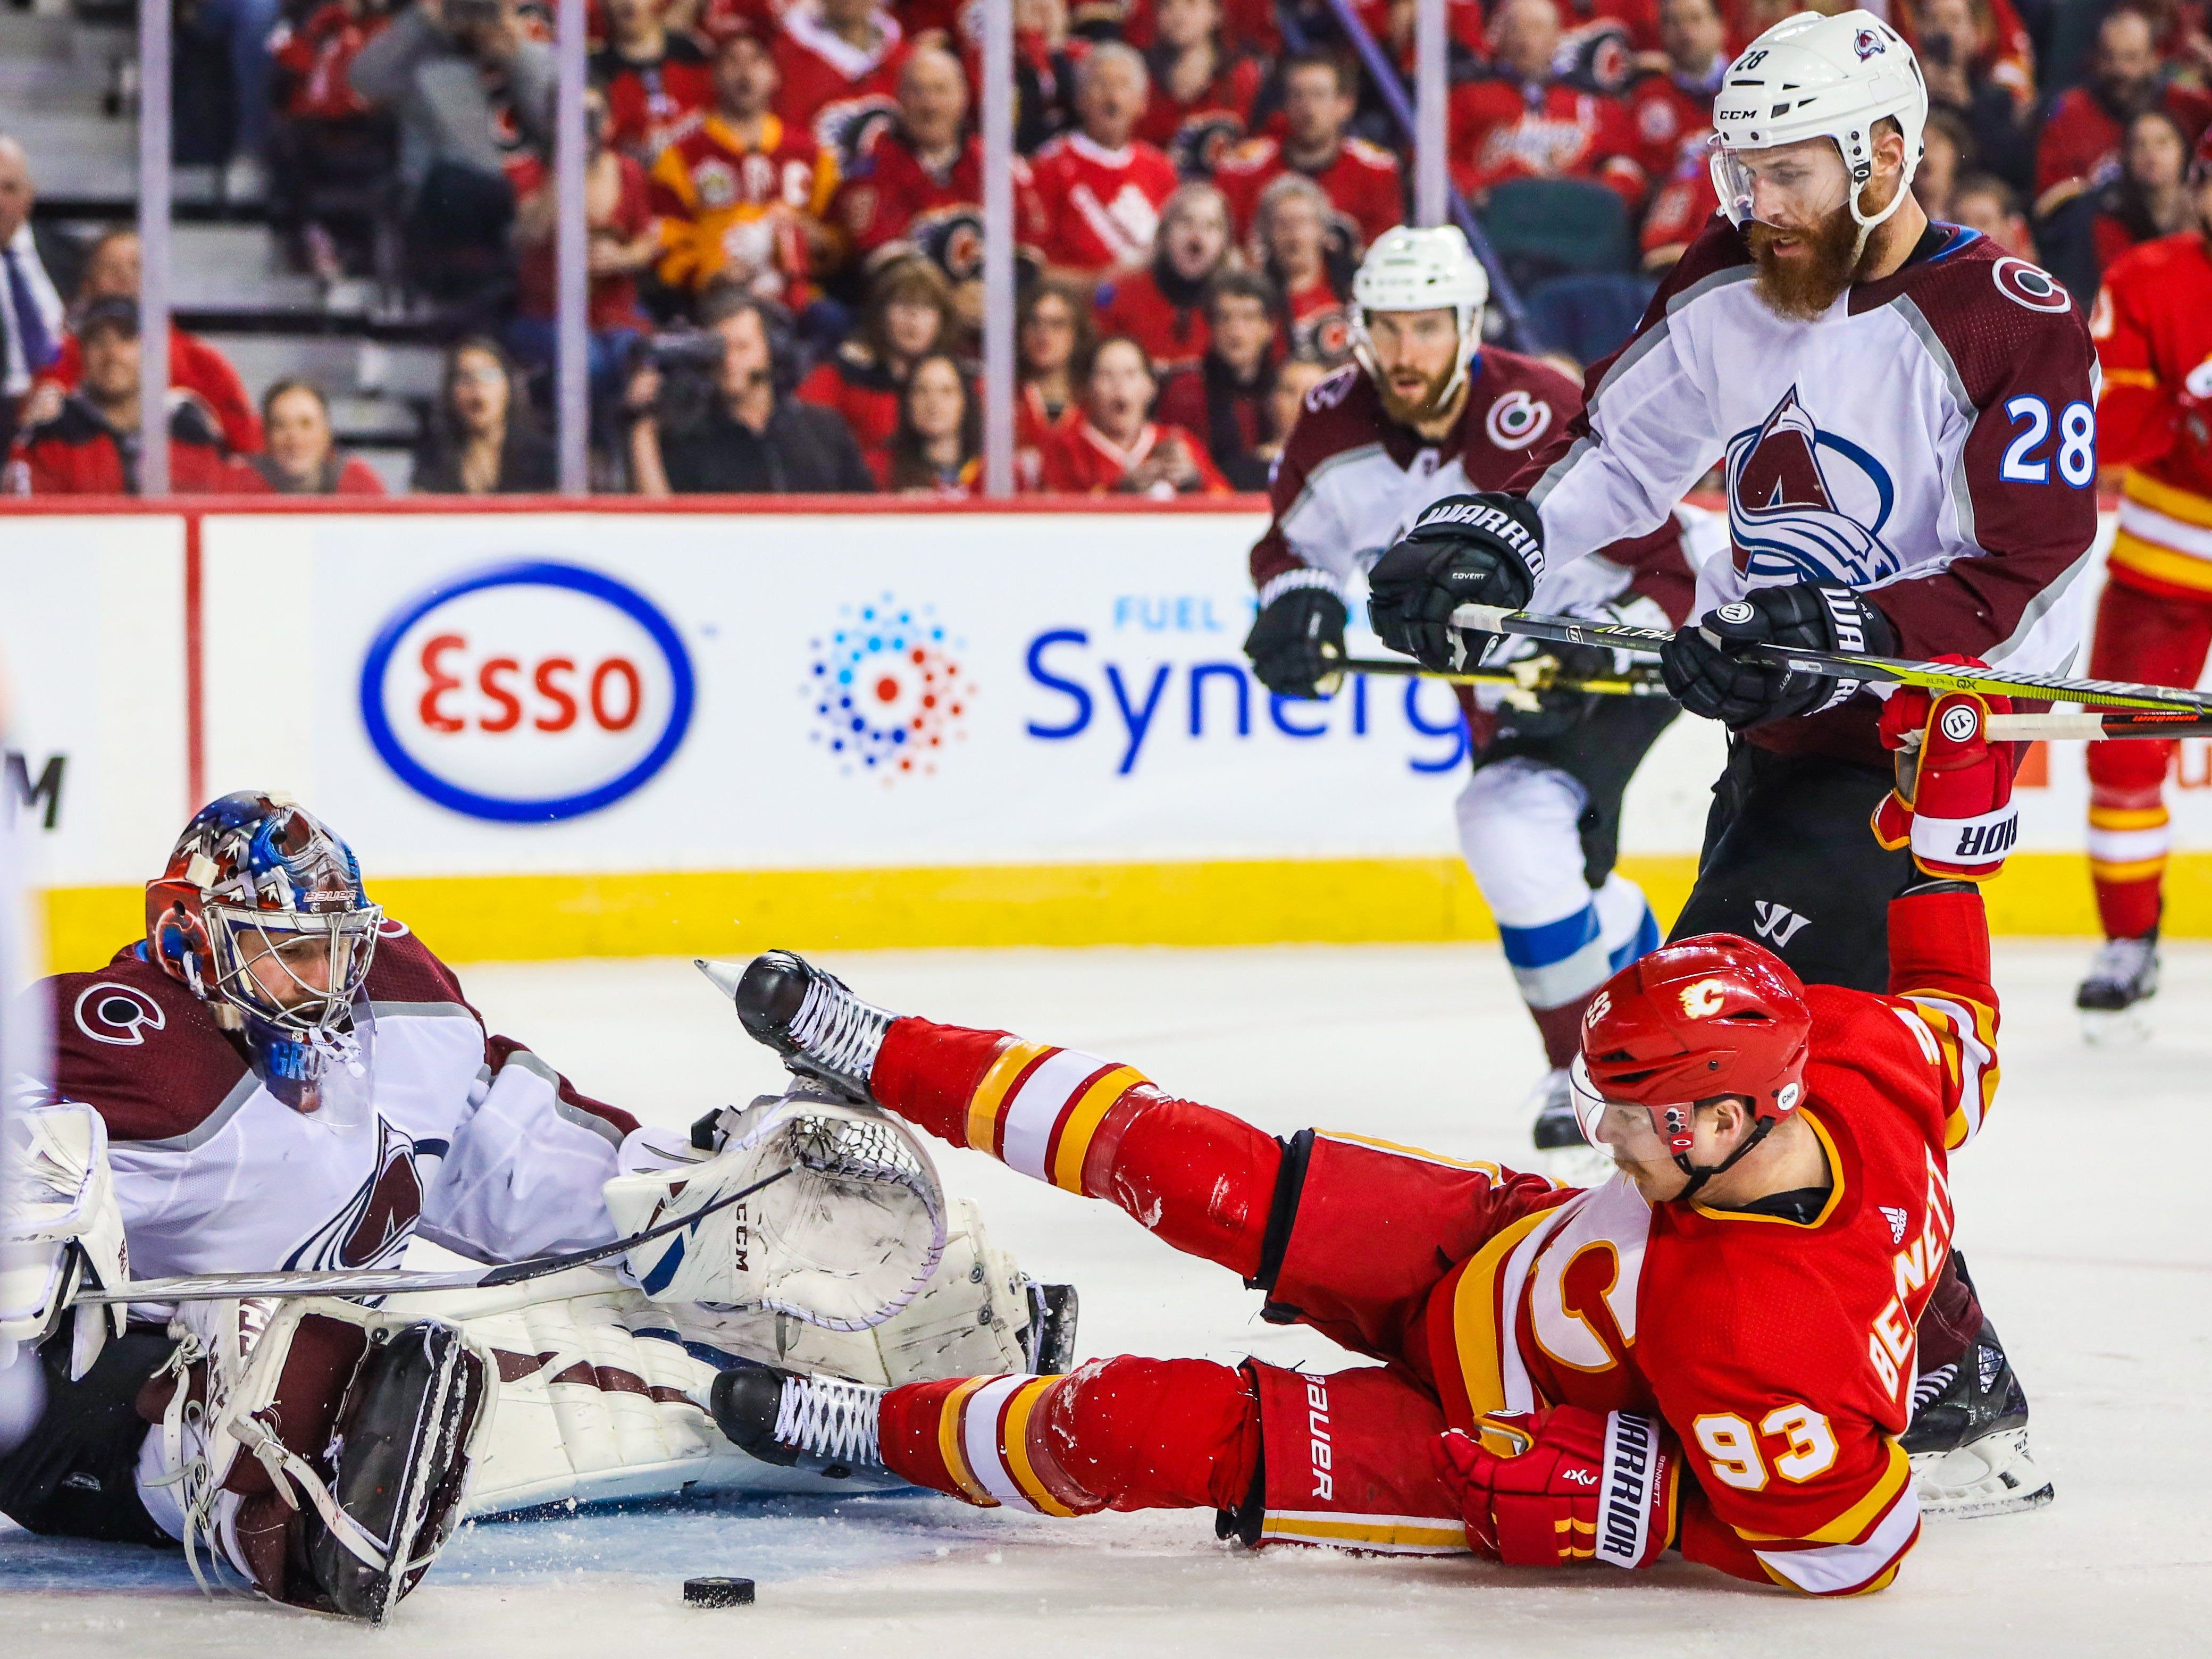 First round: Colorado Avalanche goaltender Philipp Grubauer makes a save against Calgary Flames center Sam Bennett (93) during the second period in Game 1 at Scotiabank Saddledome. The Flames won the game, 4-0.